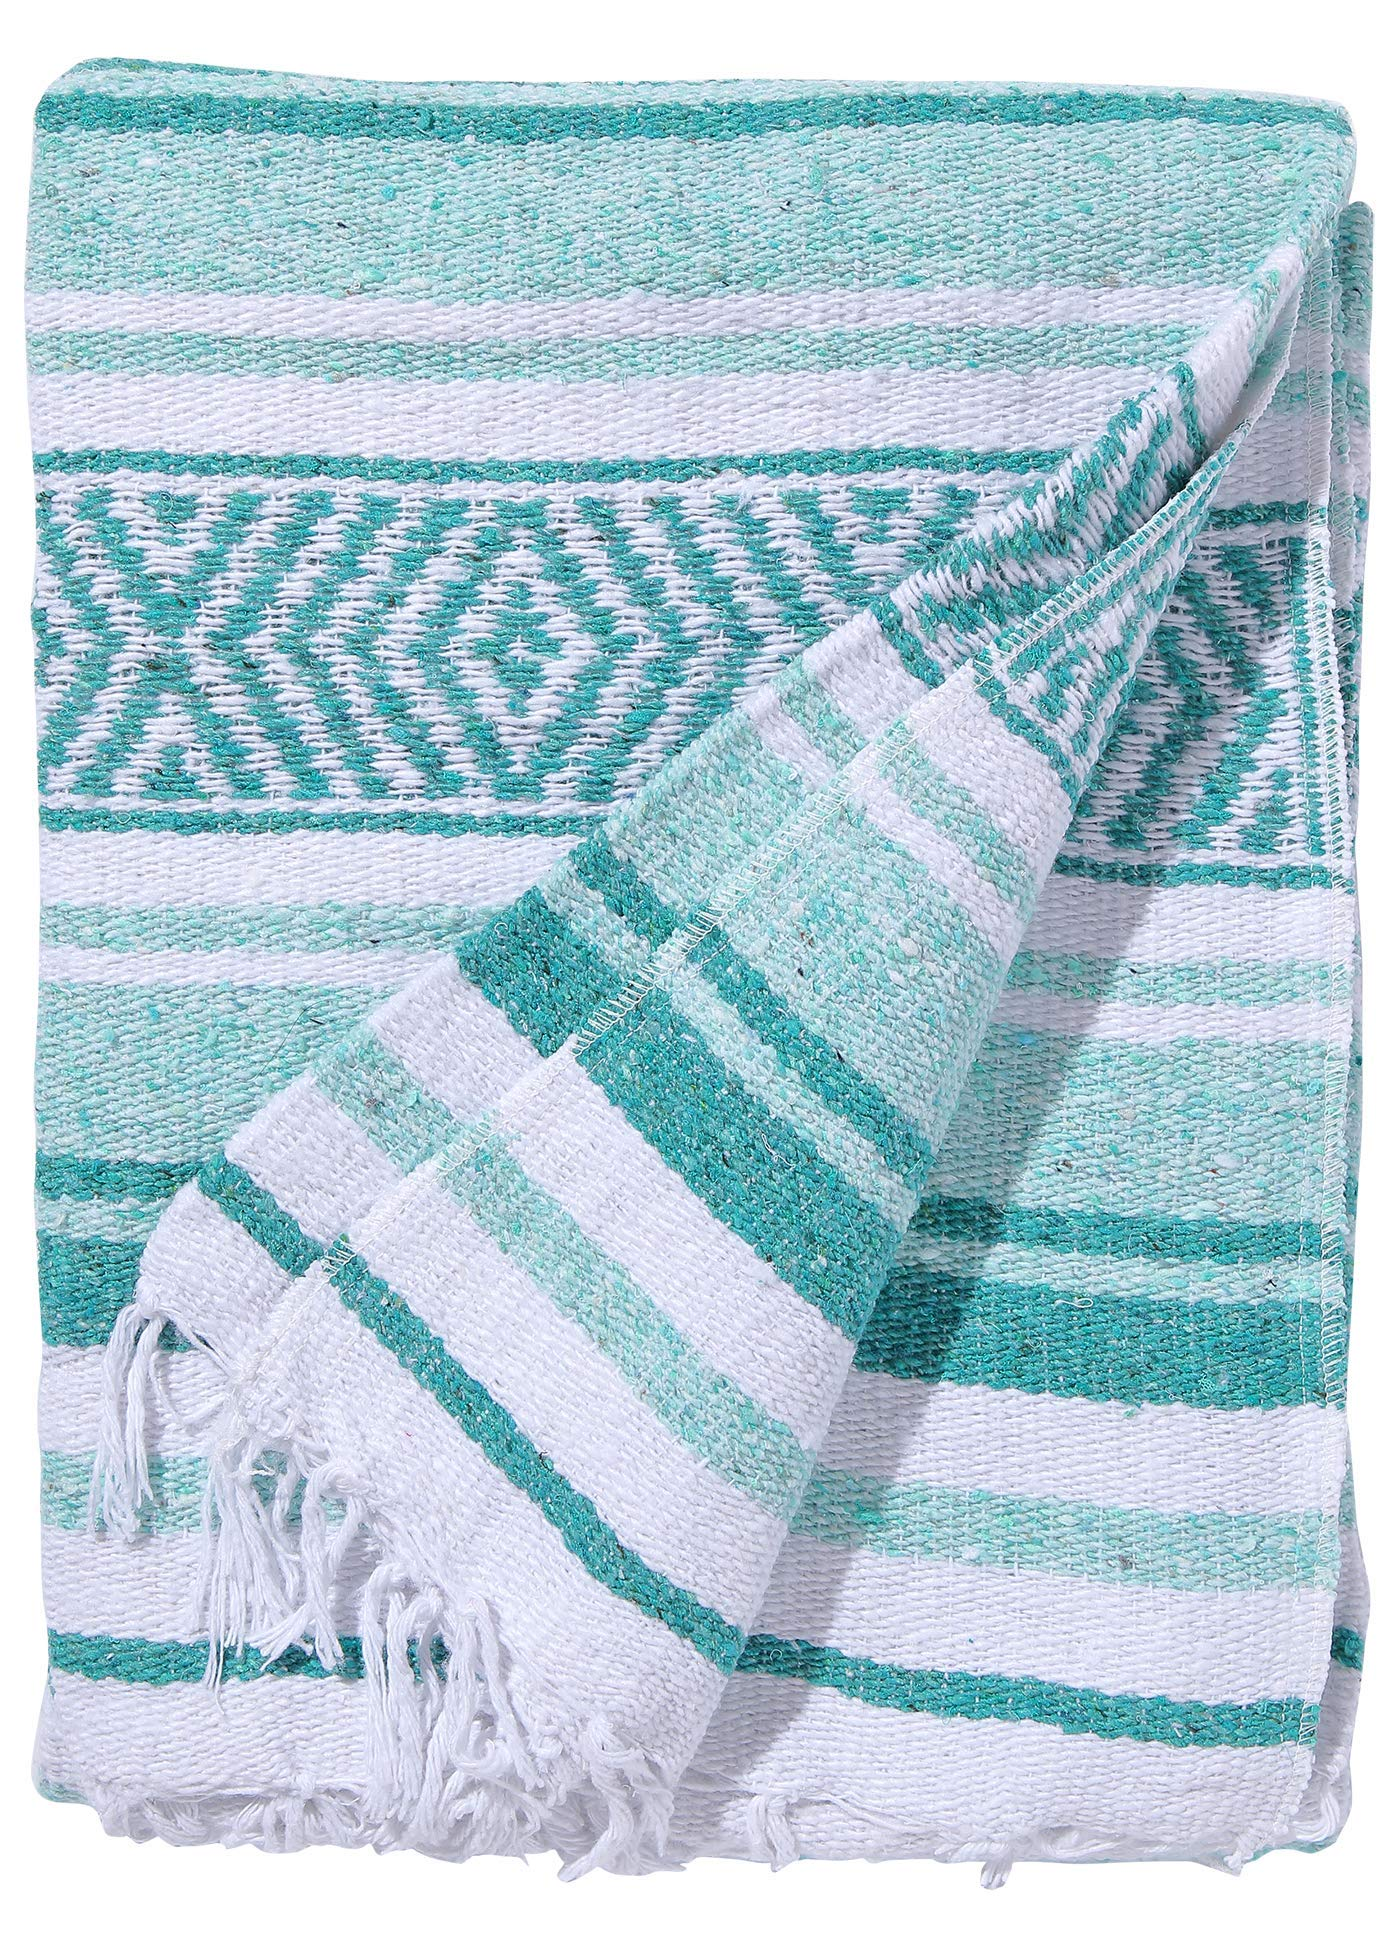 El Paso Designs Mexican Yoga Blanket Colorful 51in x 74in Studio Mexican Falsa Blanket Ideal for Yoga, Camping, Picnic, Beach Blanket, Bedding, Home Decor Soft Woven (Cancun)